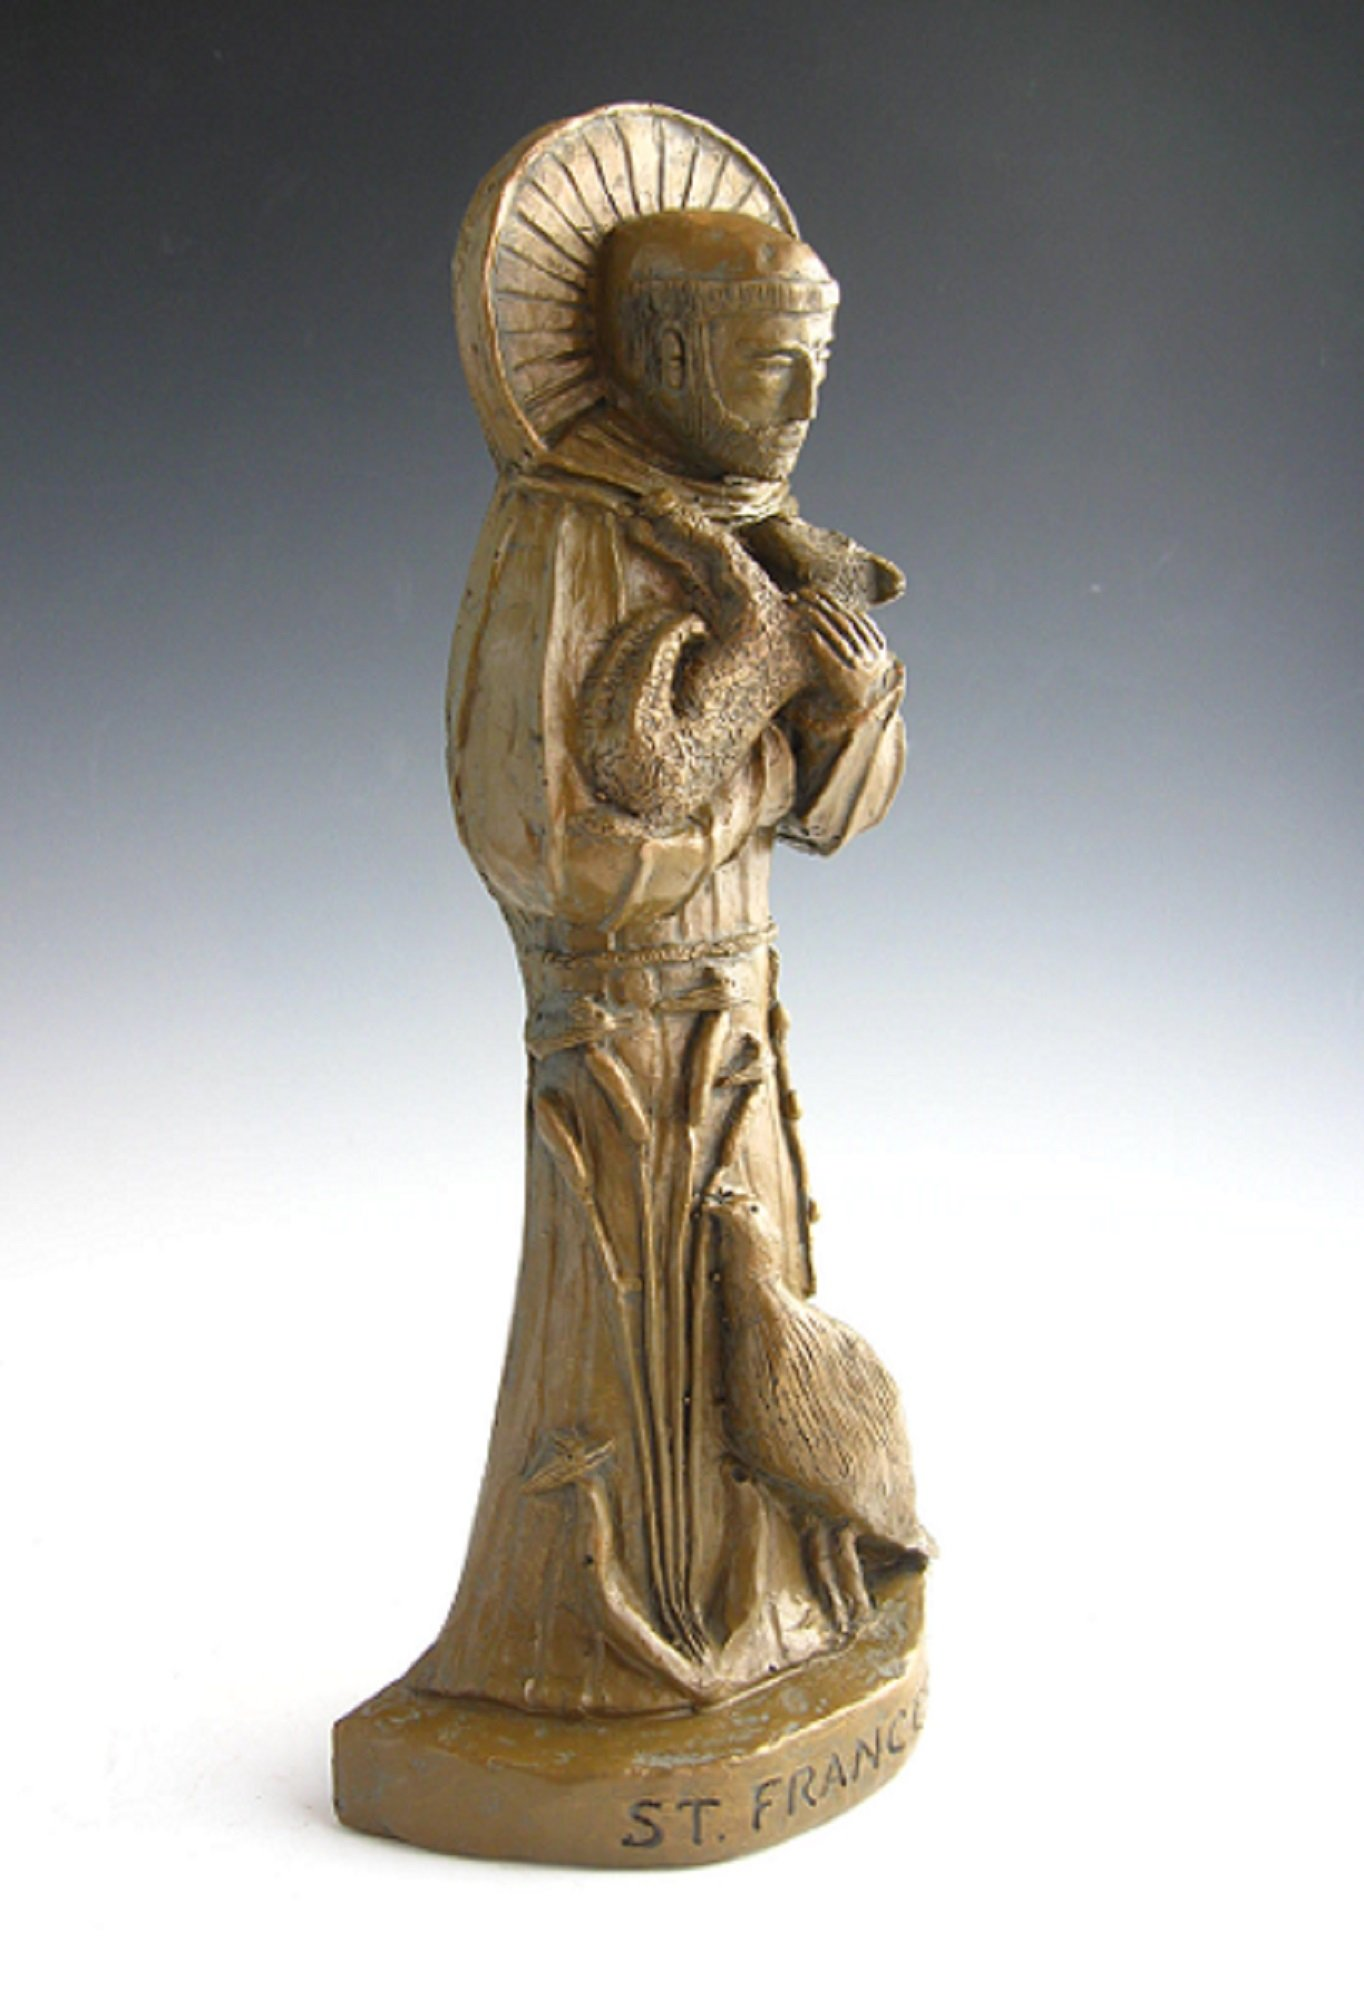 St. Francis, Patron of Nature: Handmade Statue